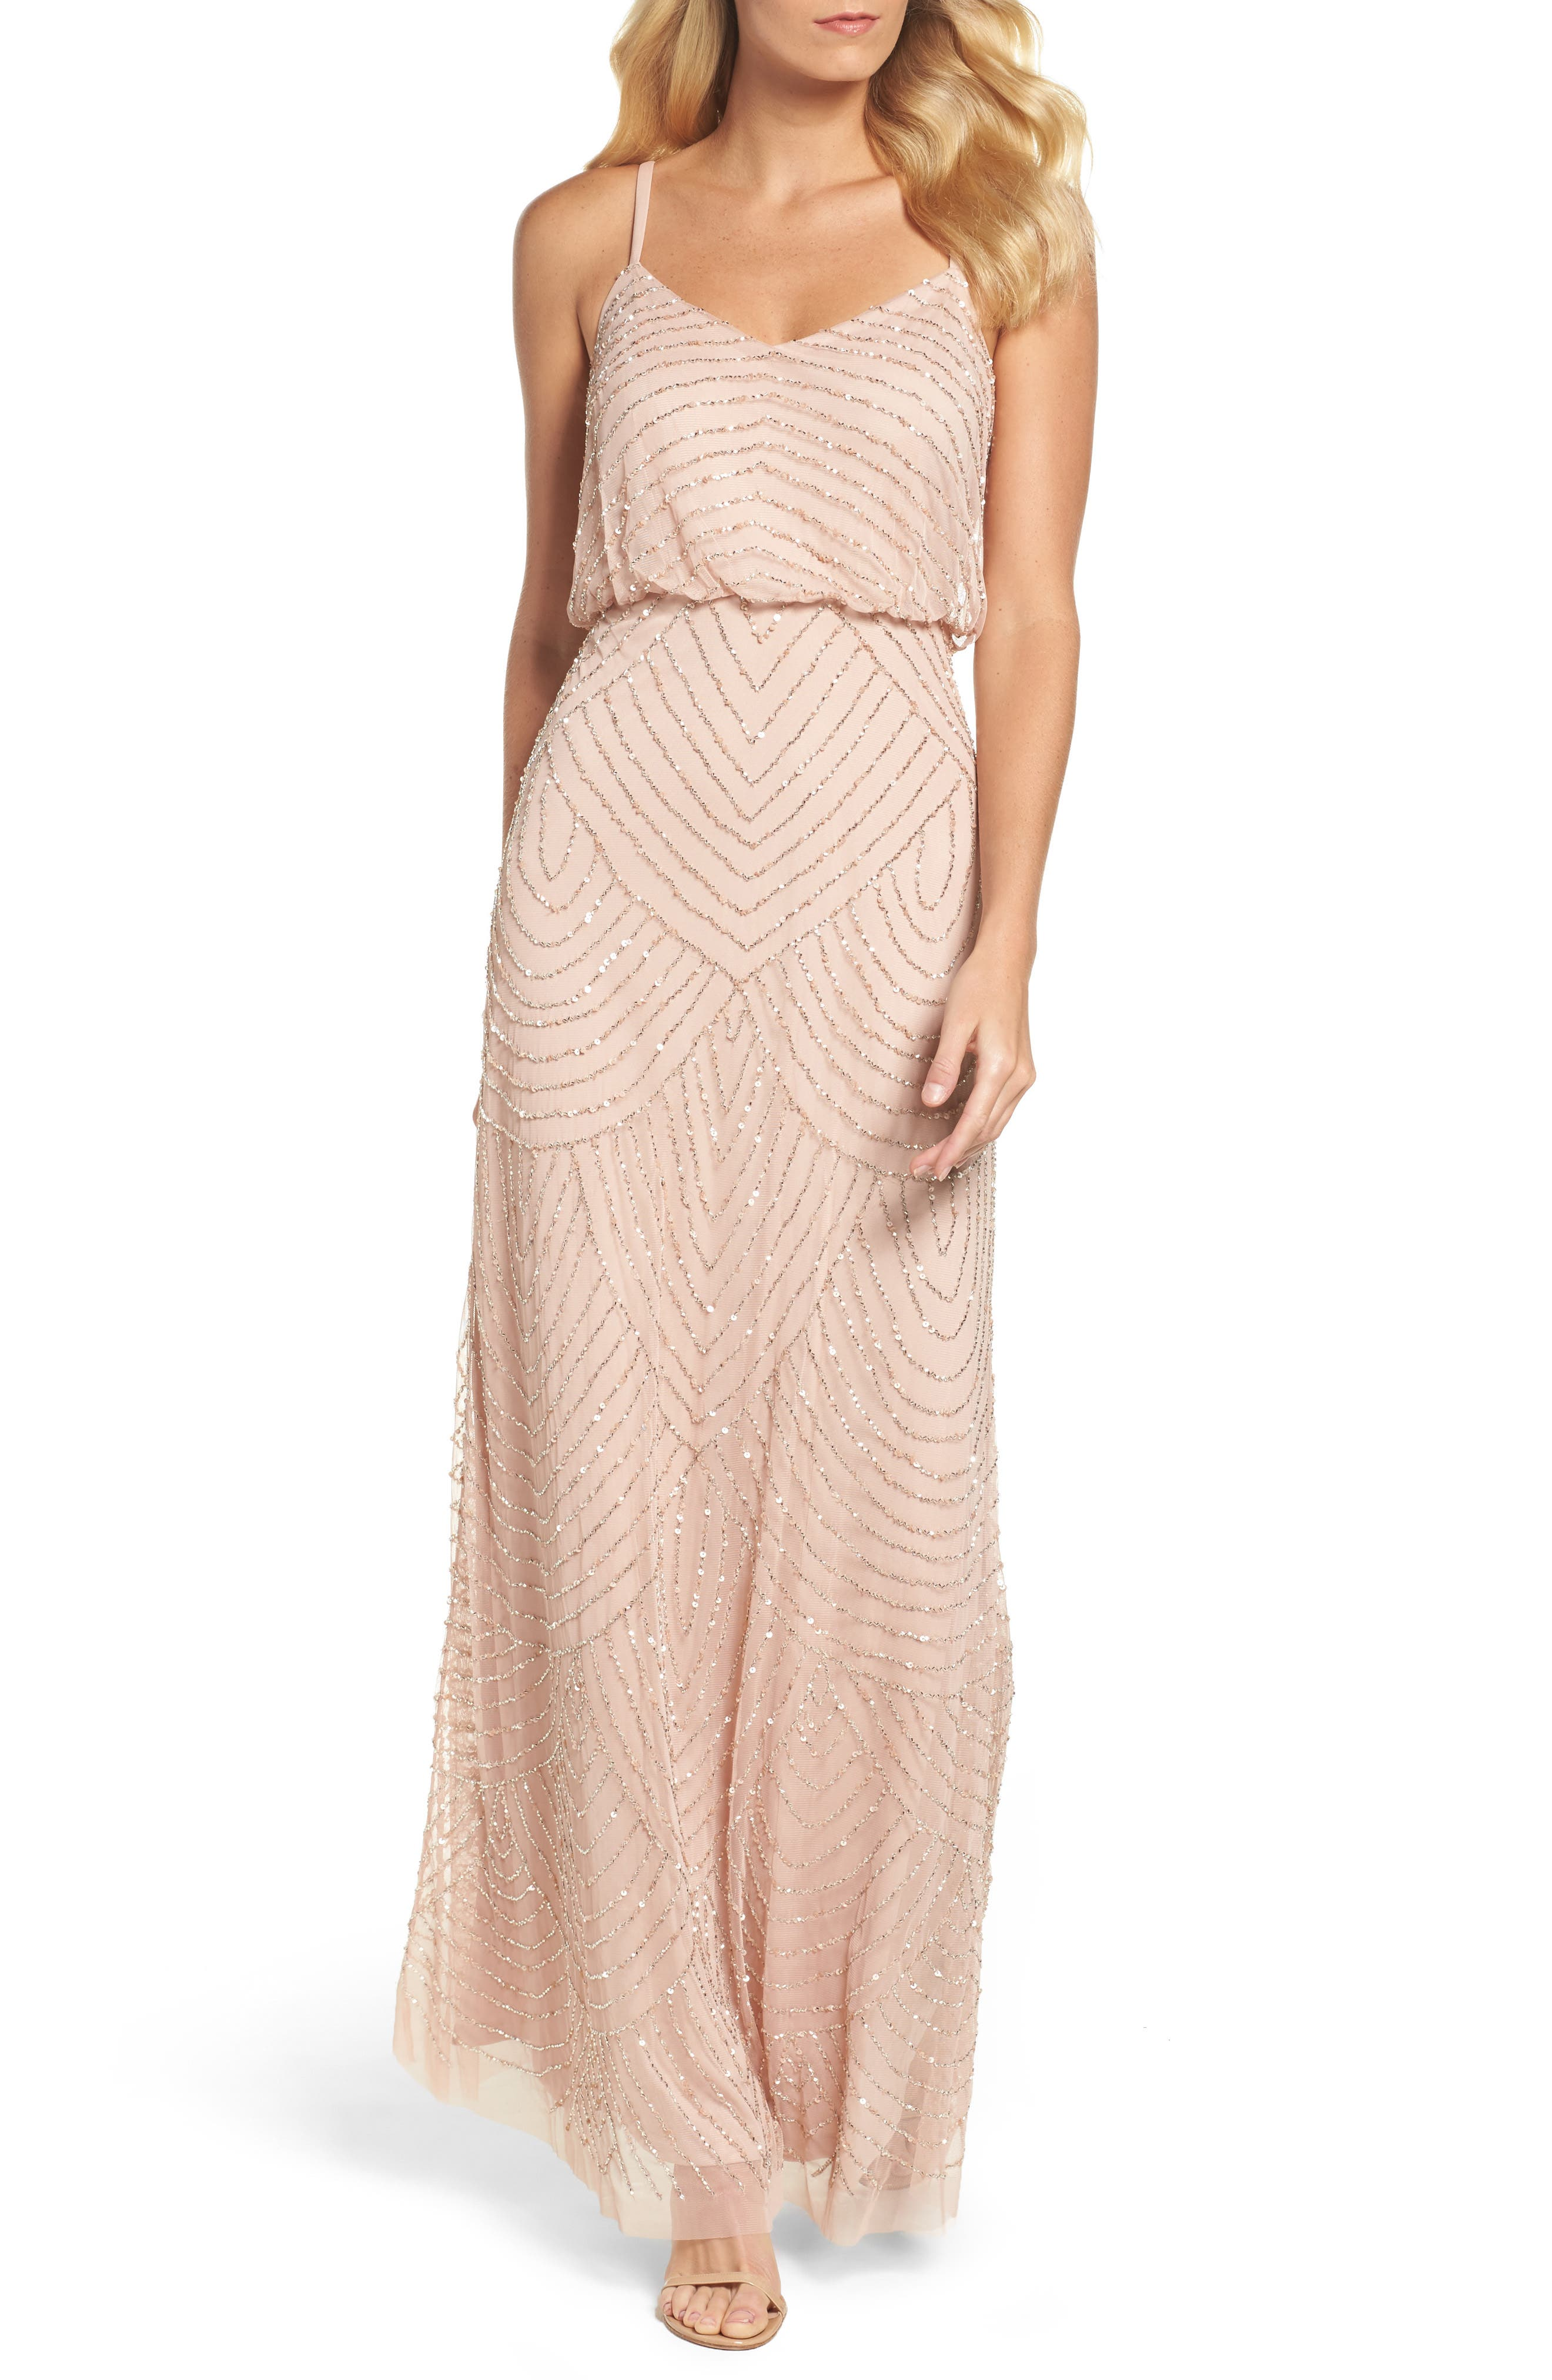 Main Image - Adrianna Papell Embellished Blouson Gown (Regular & Petite)